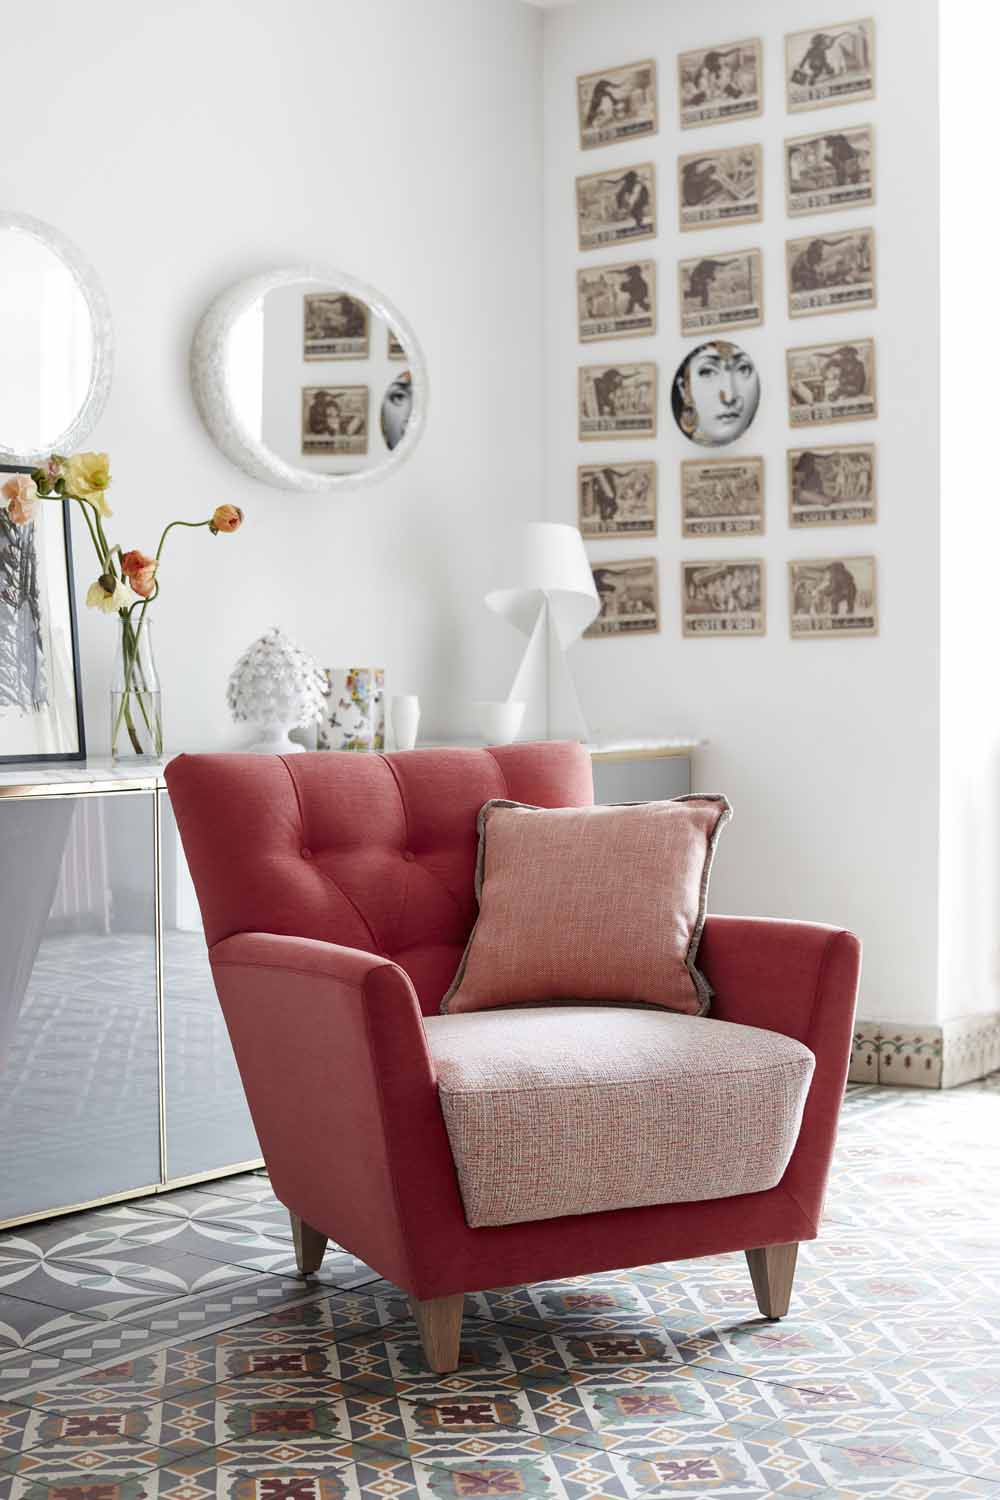 Pink Bowie chair by G Plan | Design Hunter